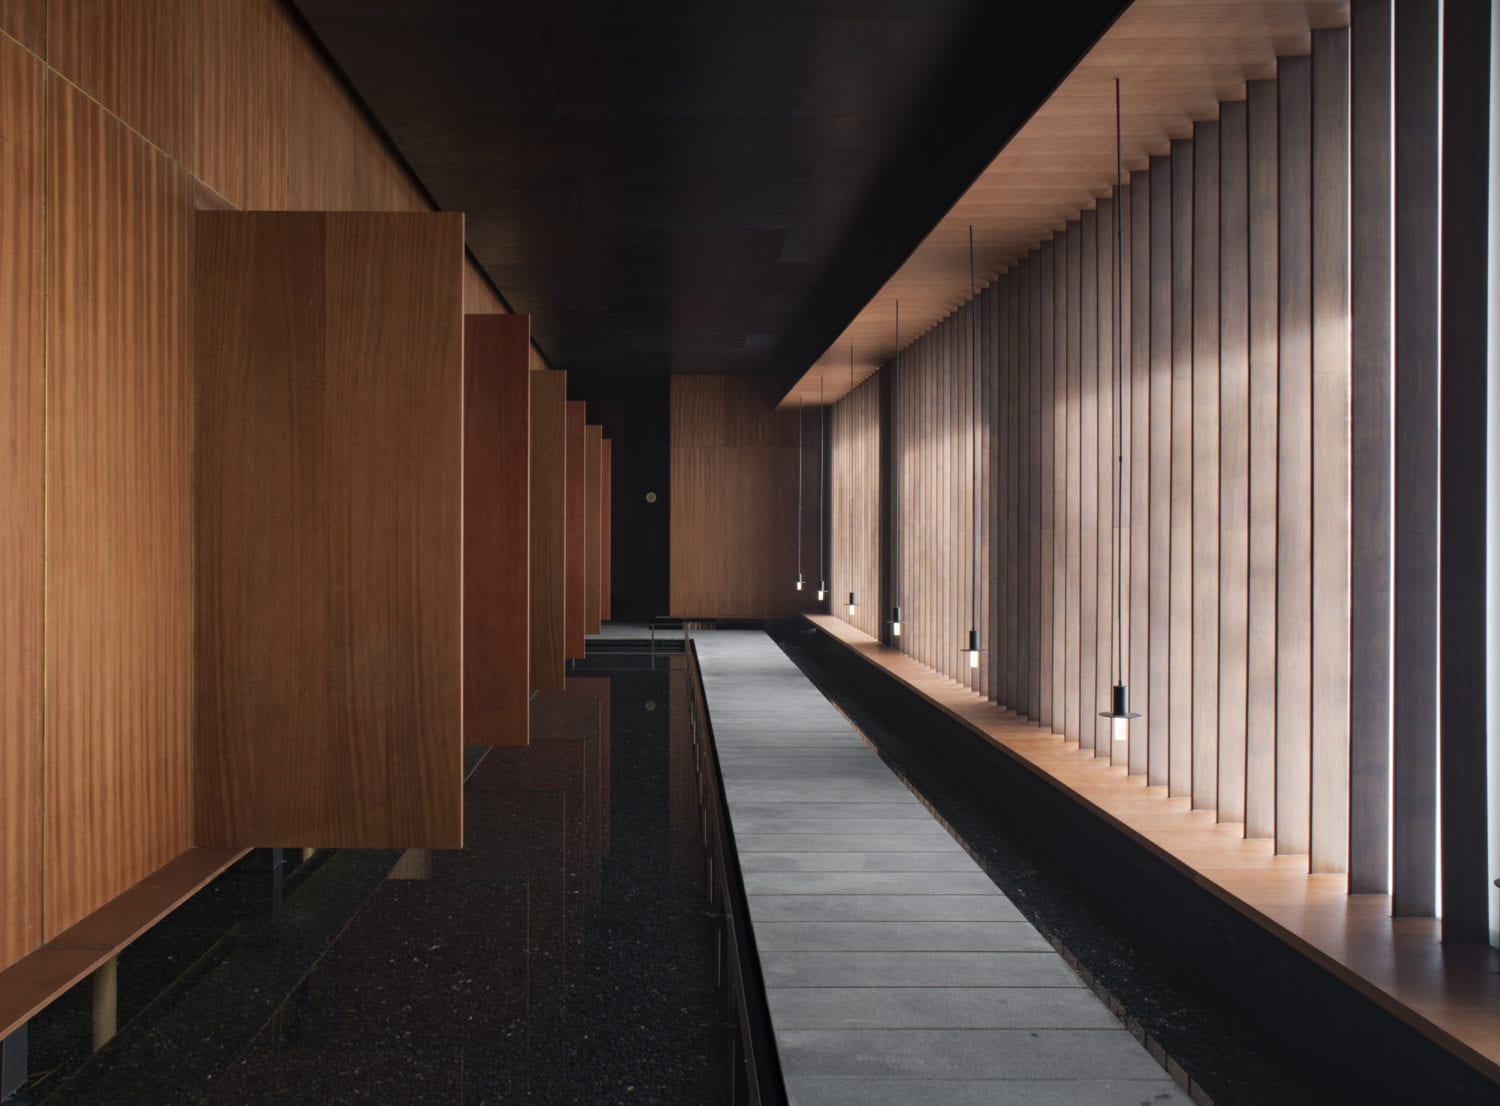 Meditation Hall In Huanghua China By Hil Architects Yellowtrace 08